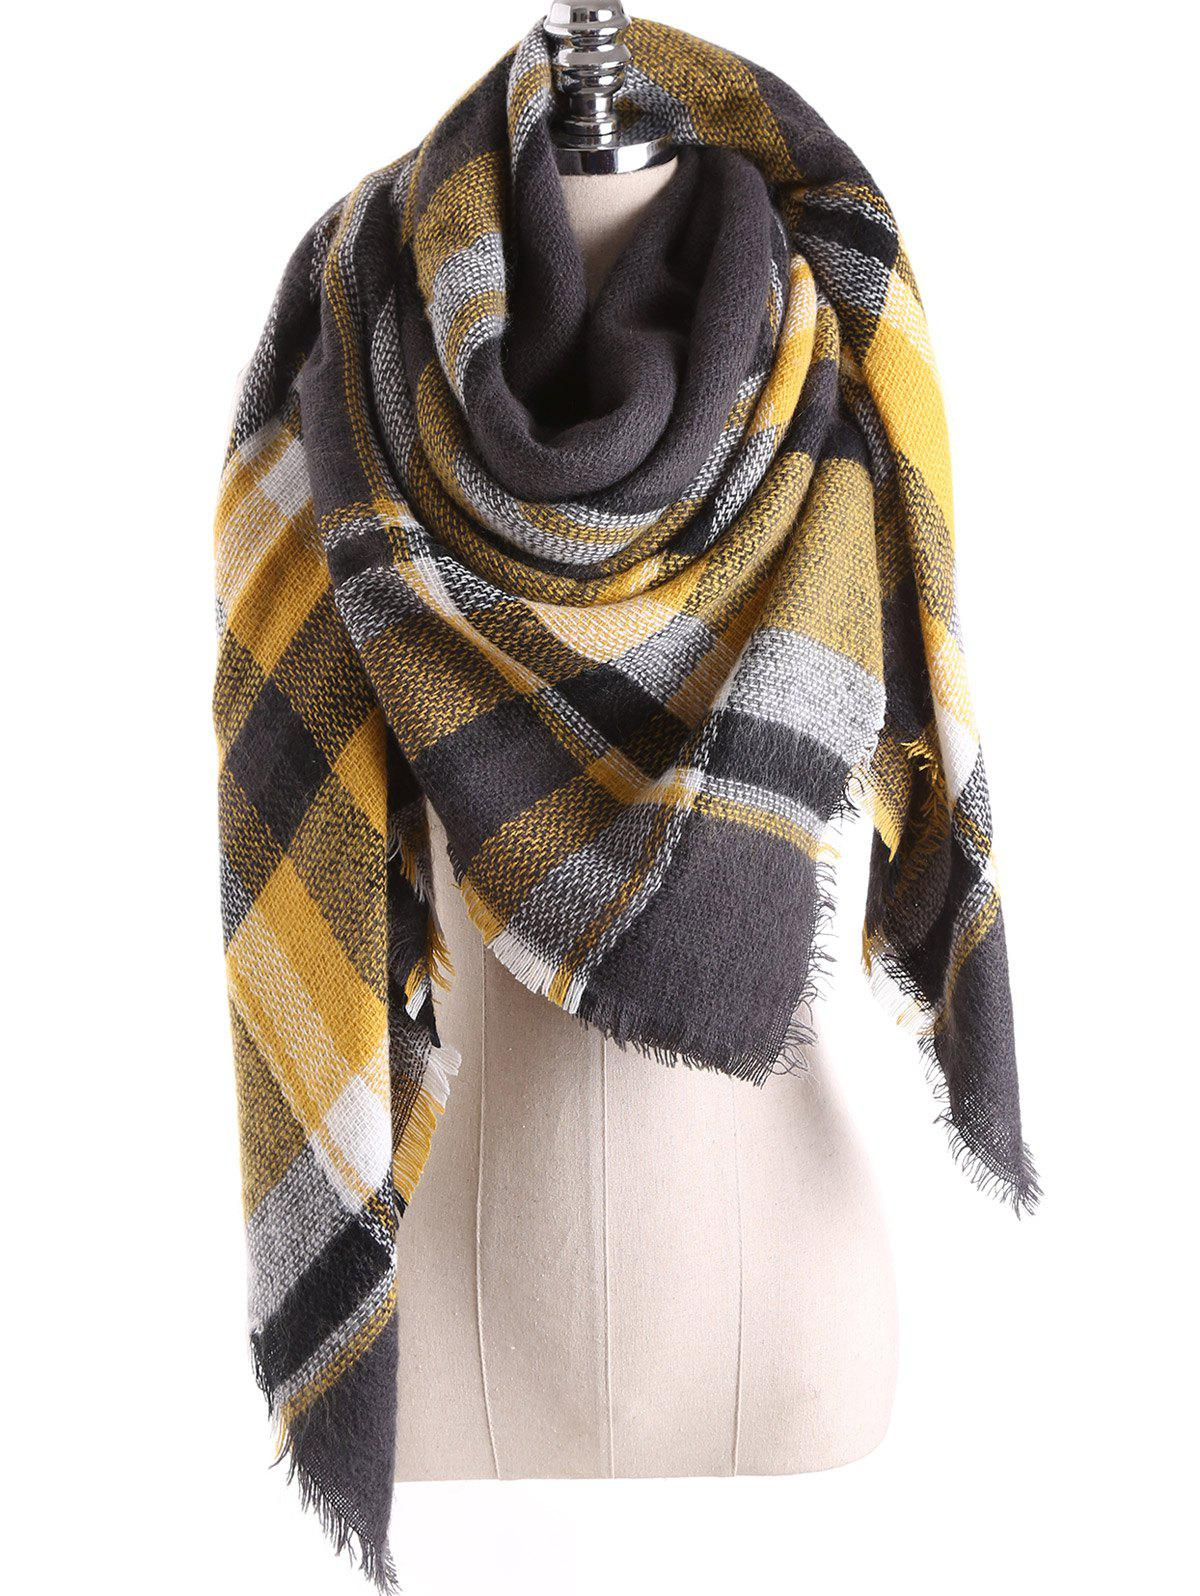 Warm Tartan Plaid Blanket Shawl ScarfACCESSORIES<br><br>Color: CHARCOAL GRAY; Scarf Type: Scarf; Group: Adult; Gender: For Women; Style: Fashion; Material: Acrylic; Season: Fall,Winter; Scarf Length: 140CM; Scarf Width (CM): 140CM; Weight: 0.270kg; Package Contents: 1 x Scarf;